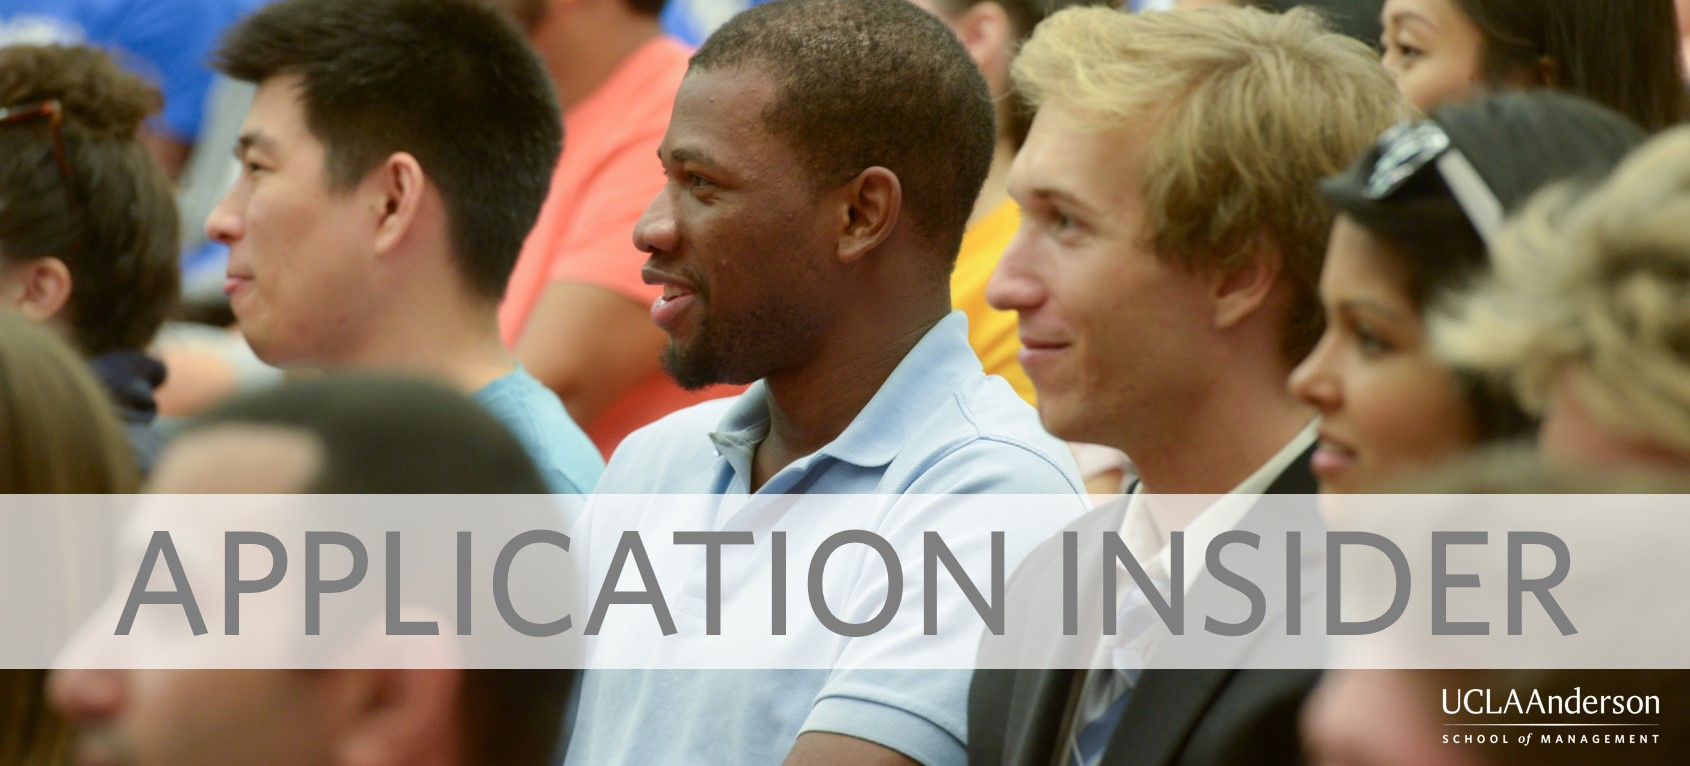 ucla anderson application insider essays mba insider s blog applicationinsider header